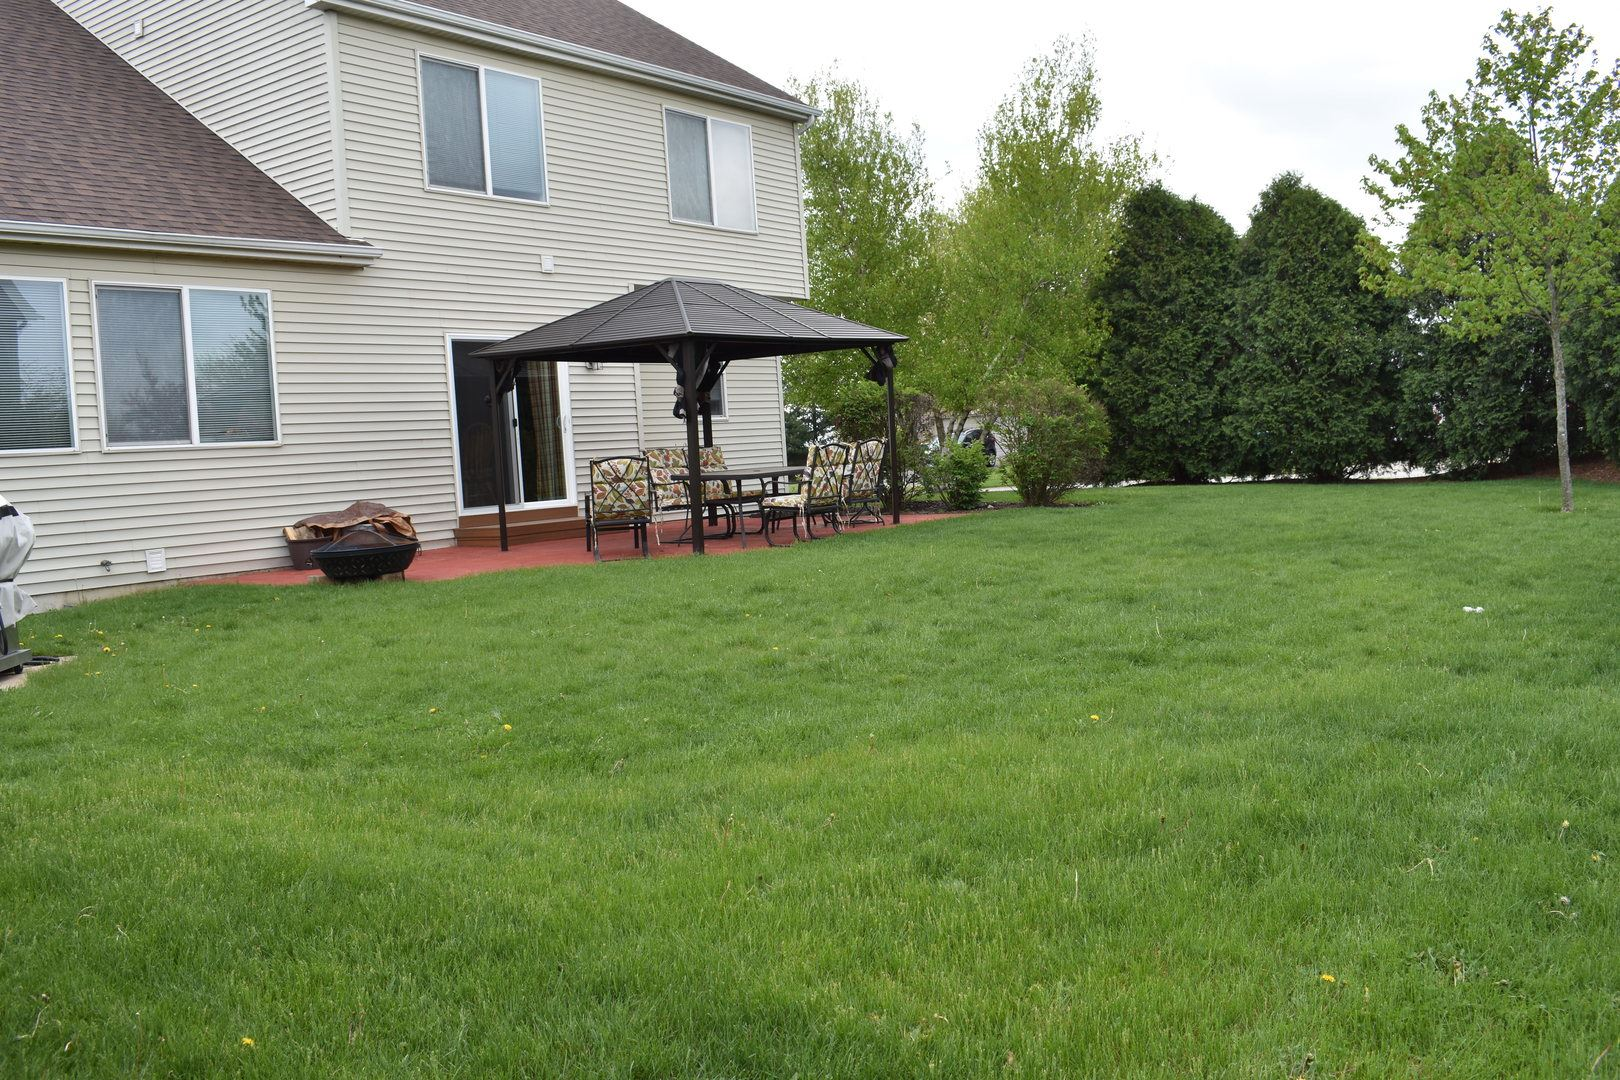 Photo of 13220 Tiger Lily Lane, Plainfield, IL 60585 (MLS # 11079535)